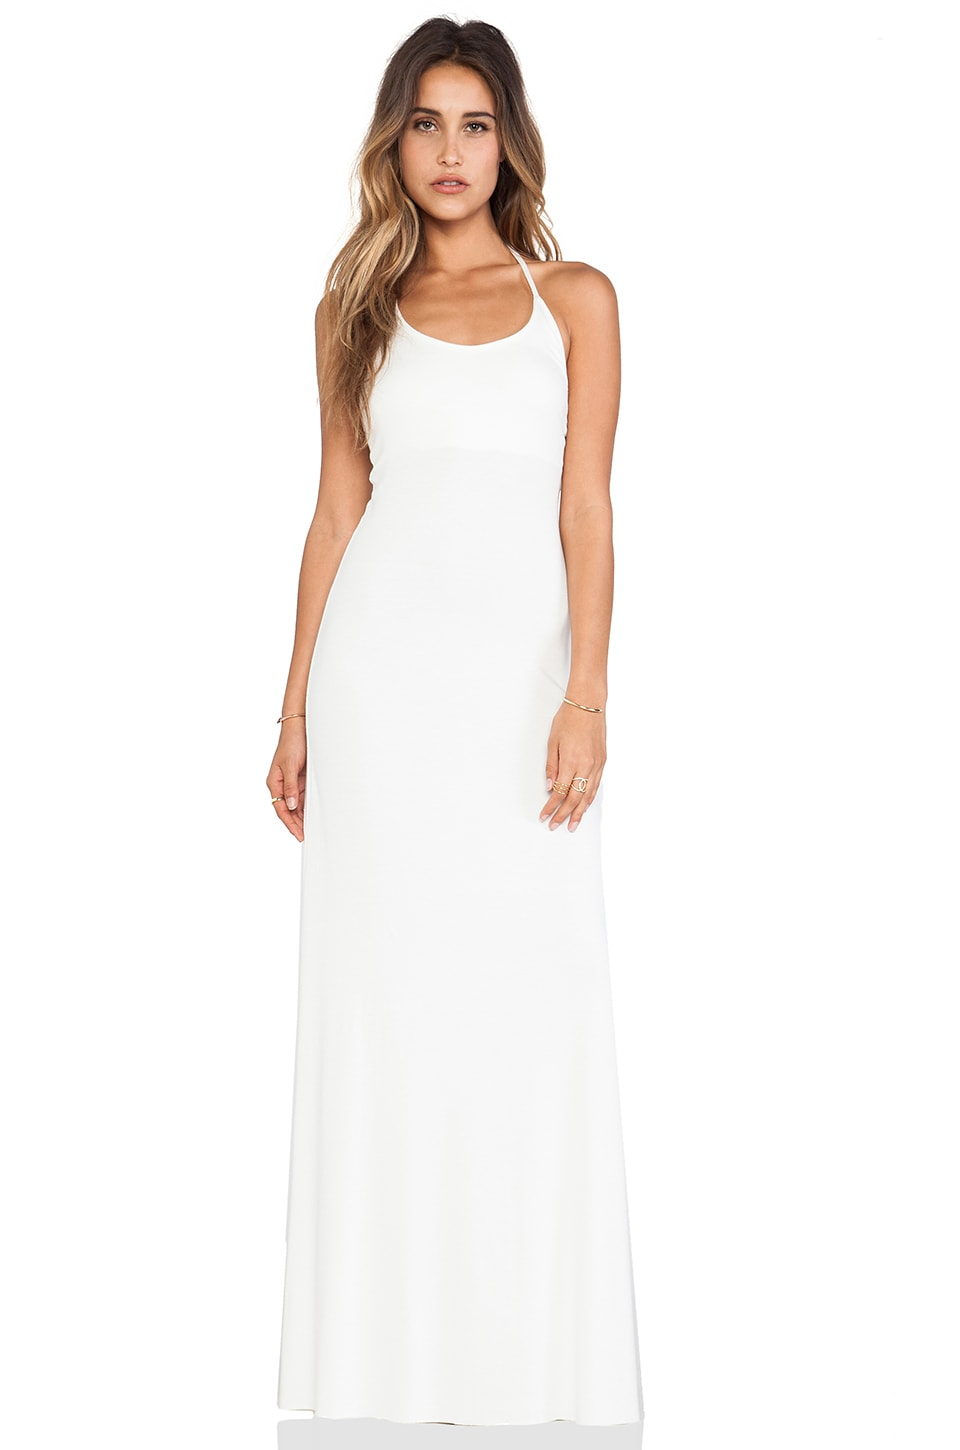 Rachel Pally x REVOLVE Marianna Dress in White